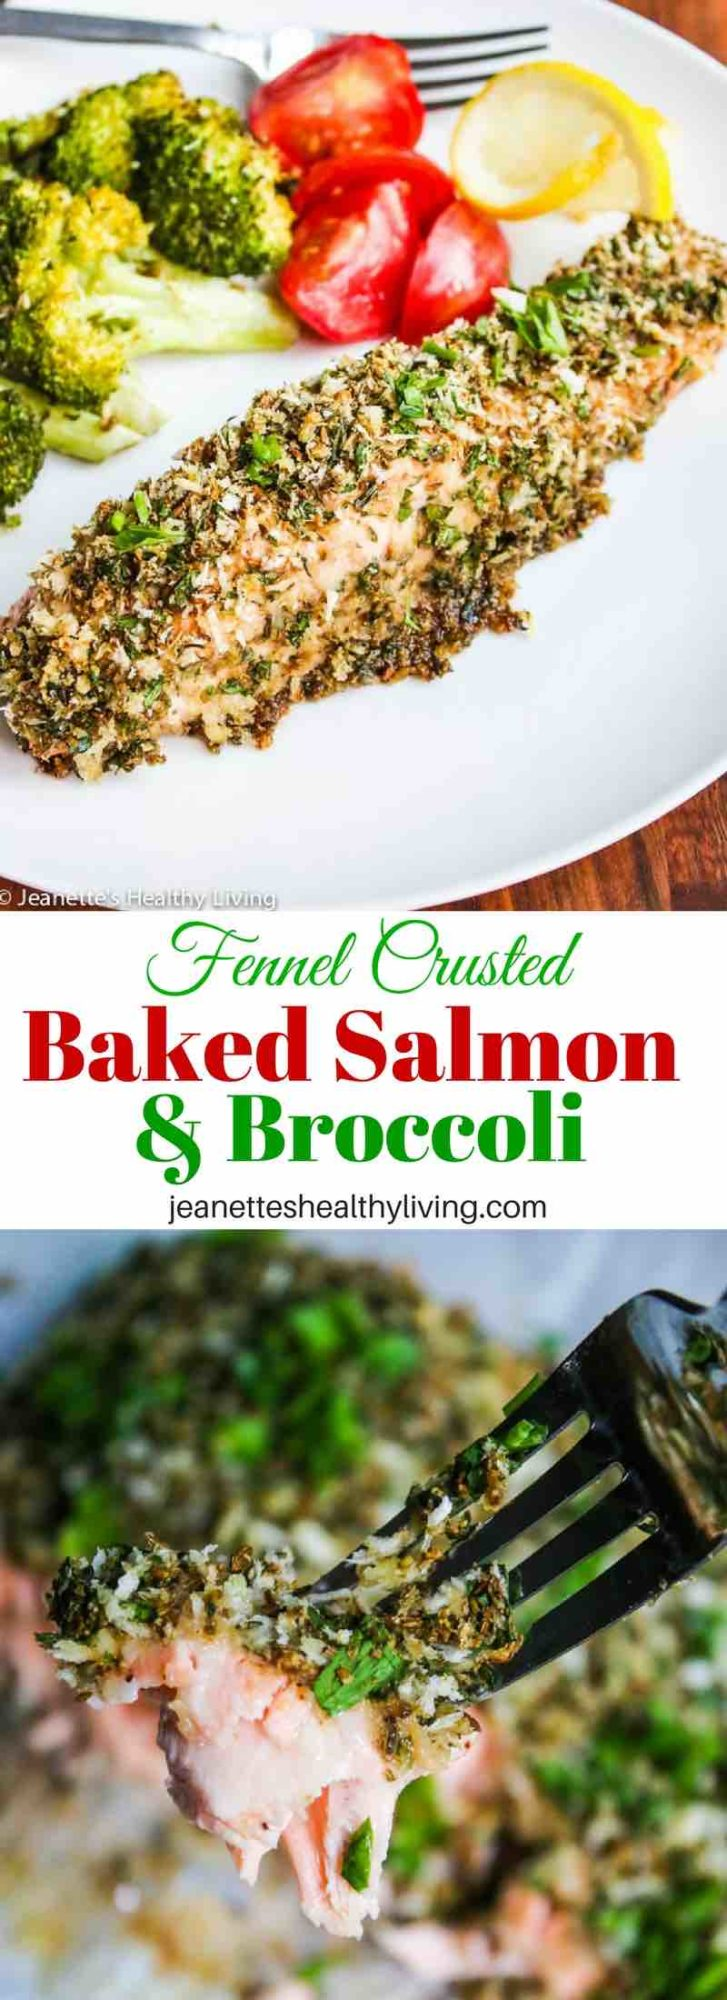 Fennel Crusted Baked Salmon and Broccoli - easy fast one pan dinner recipe